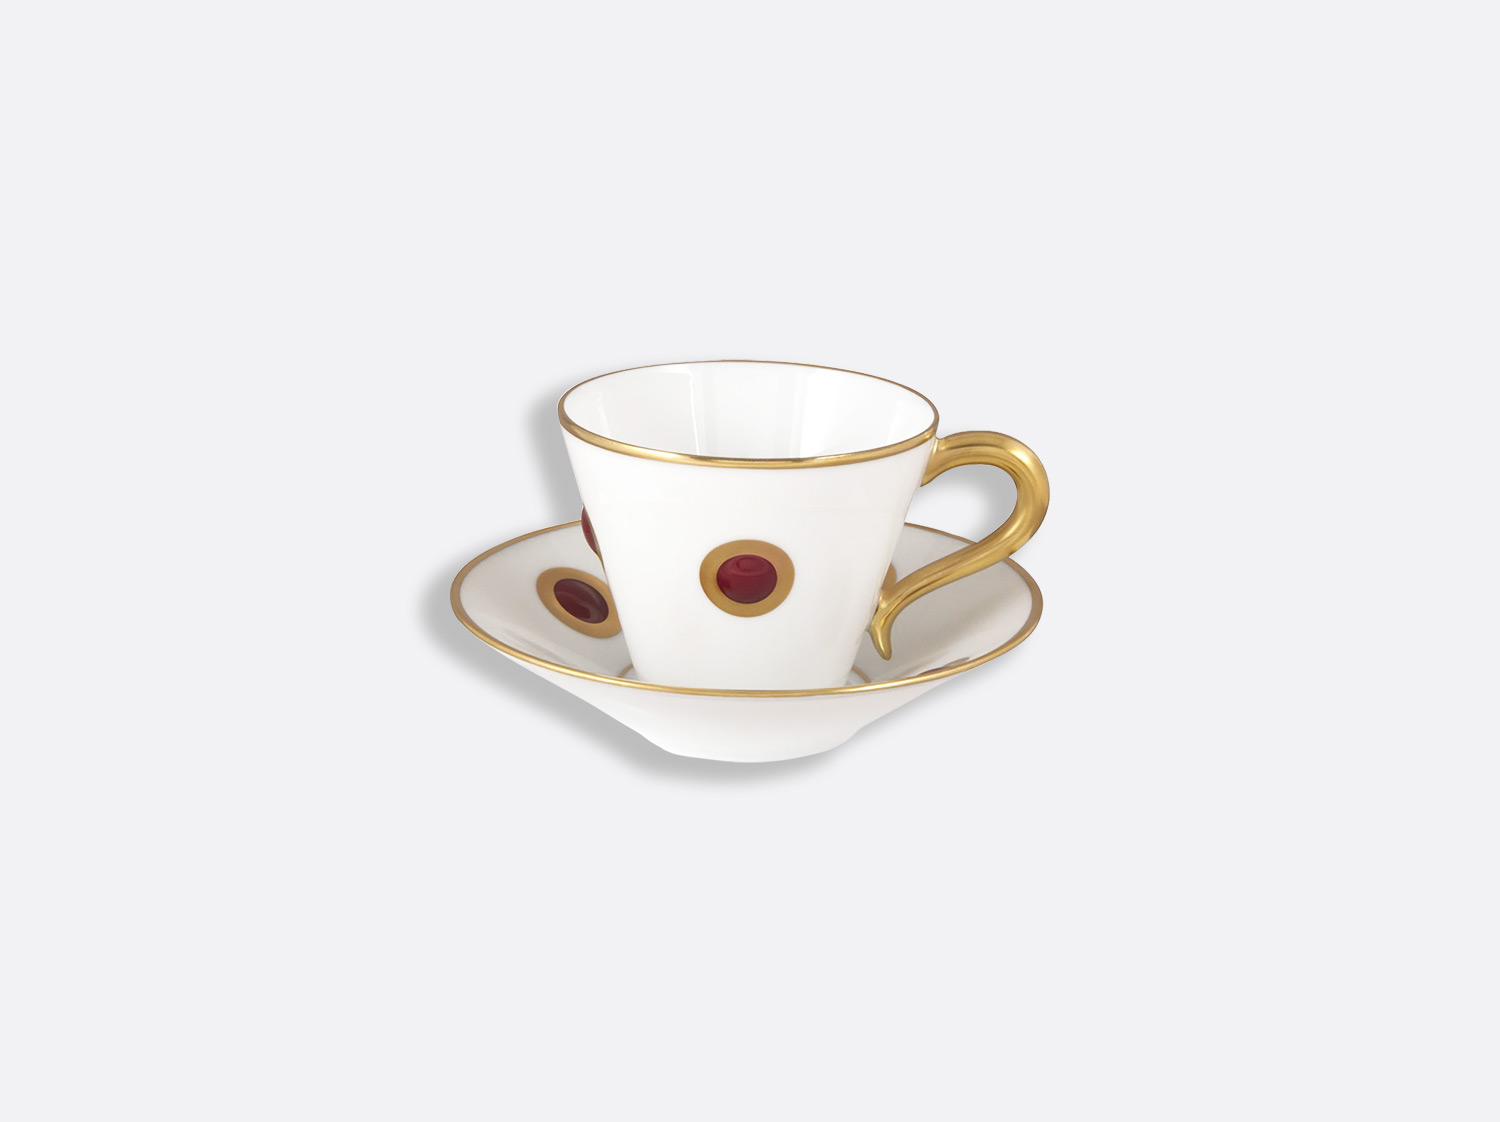 China Espresso cup and saucer 13 cl of the collection Ithaque garance | Bernardaud